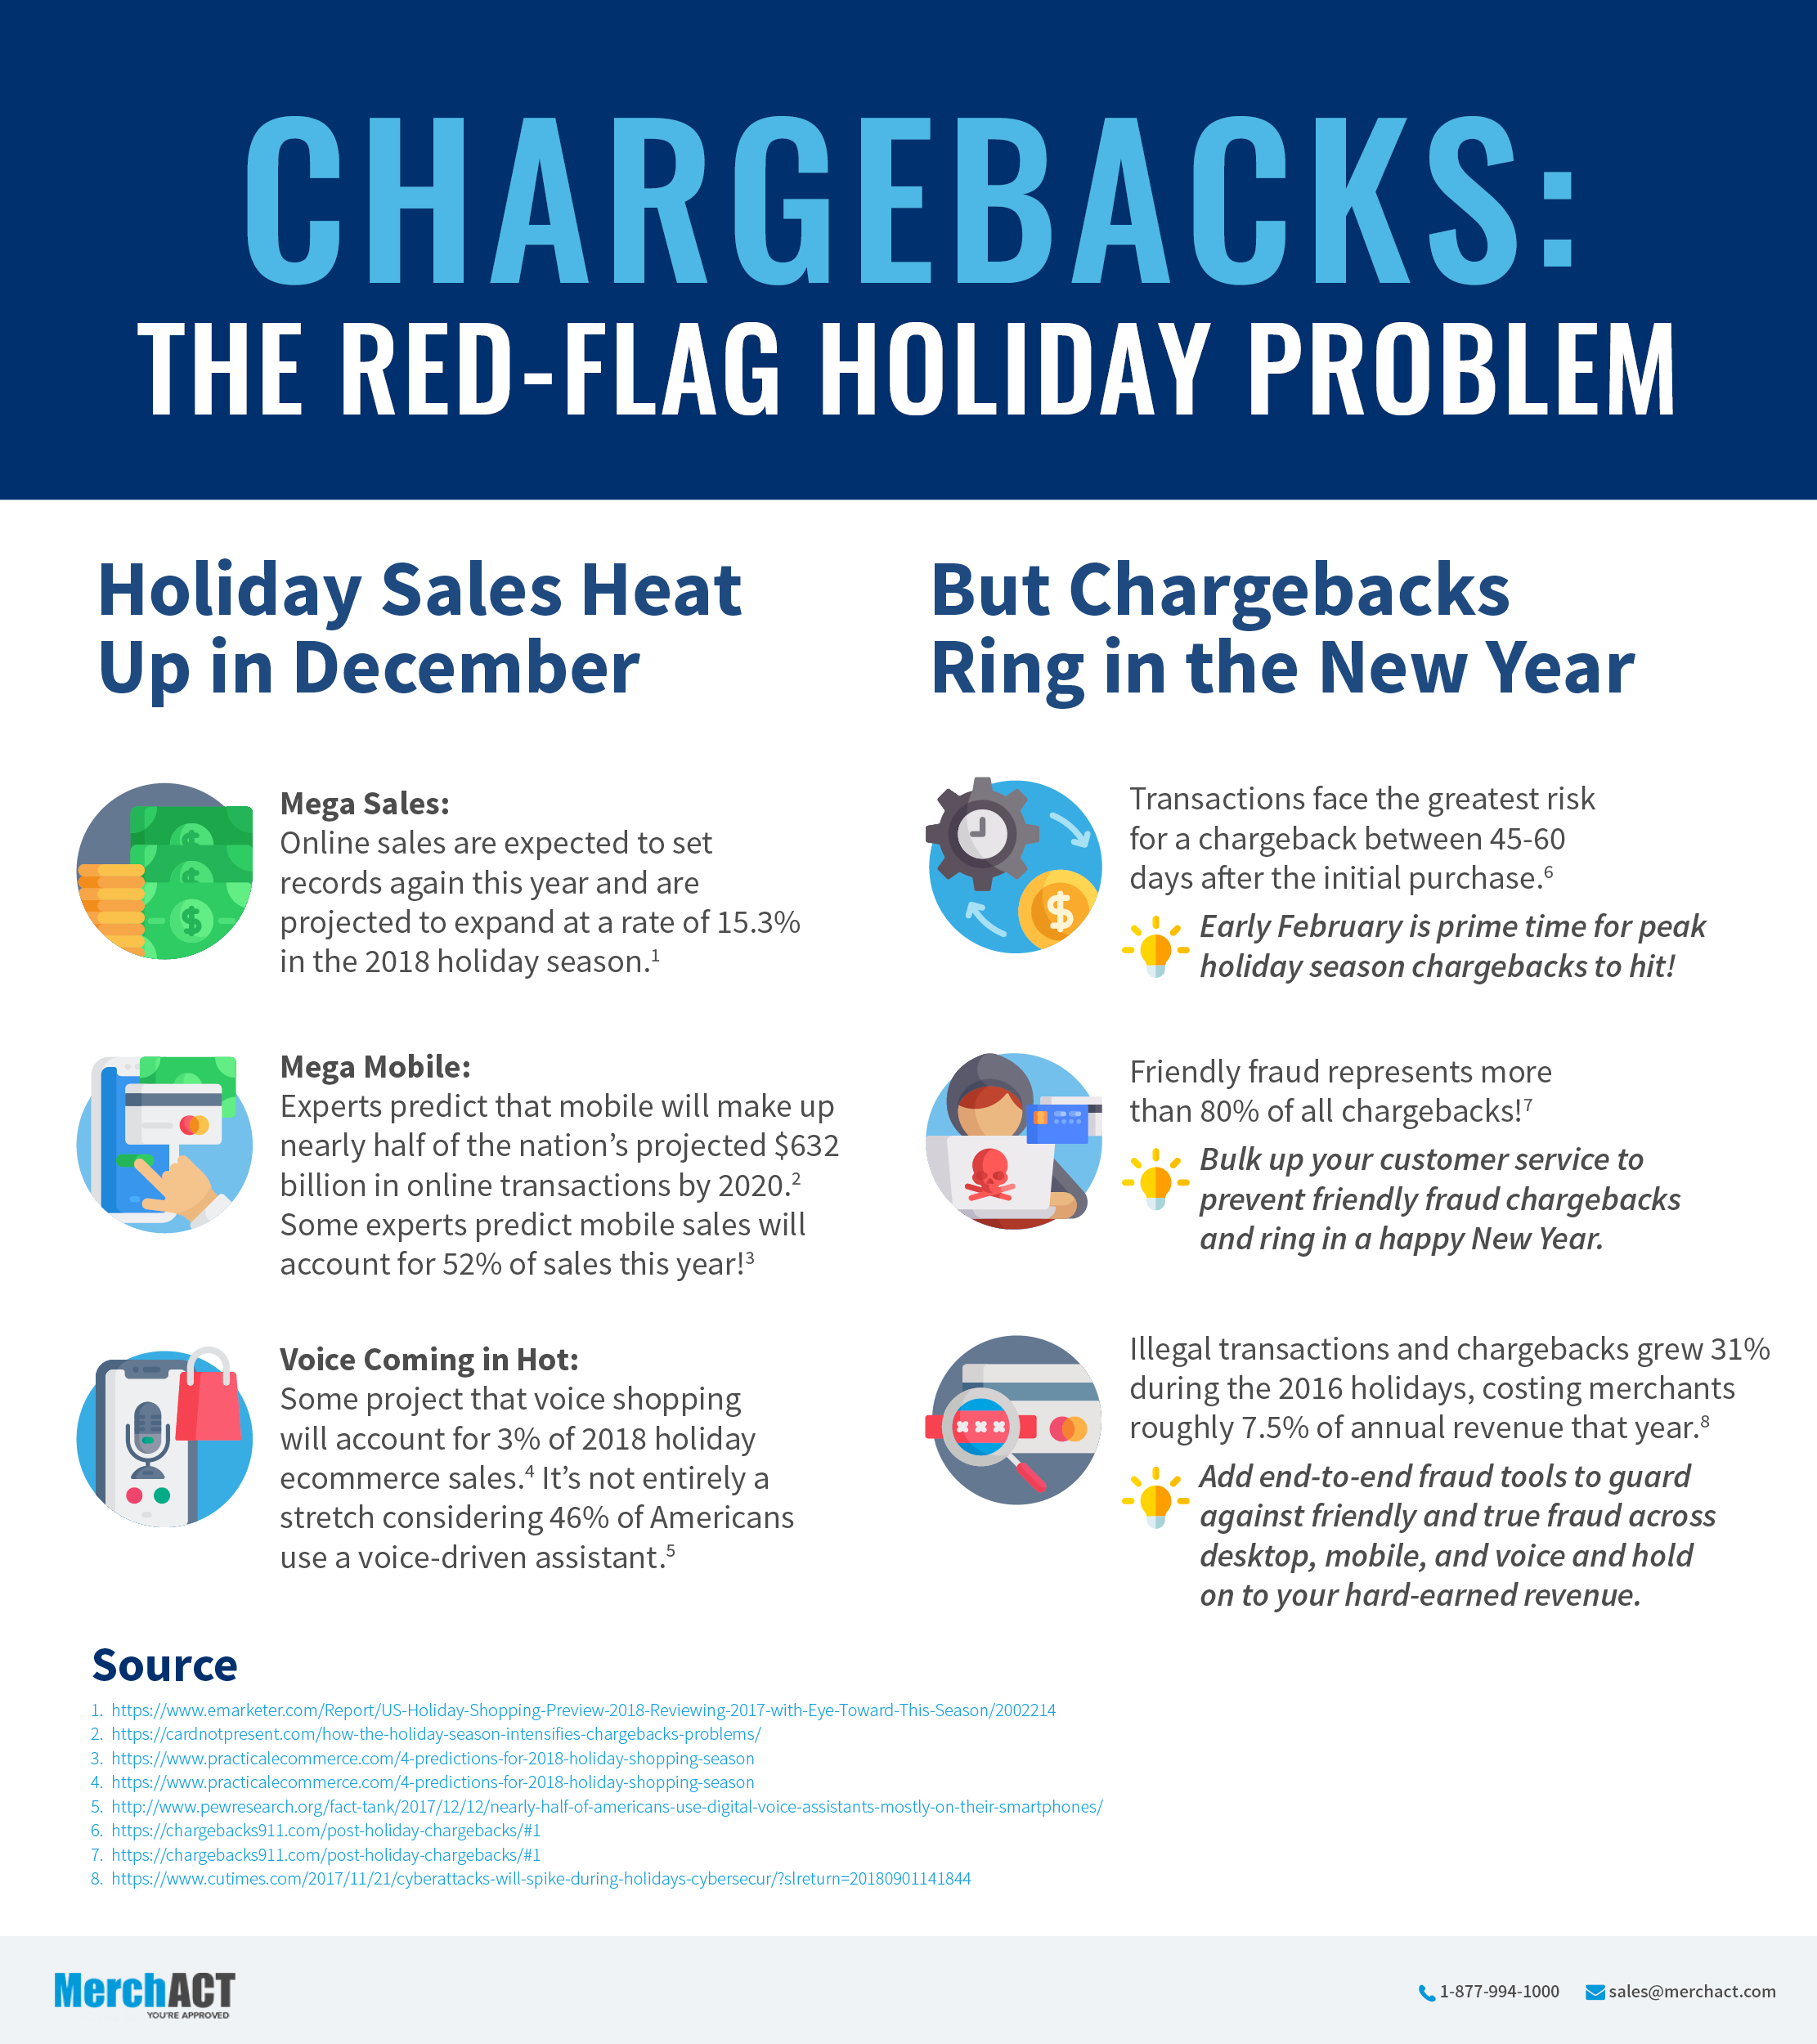 Chargeback Red Flags